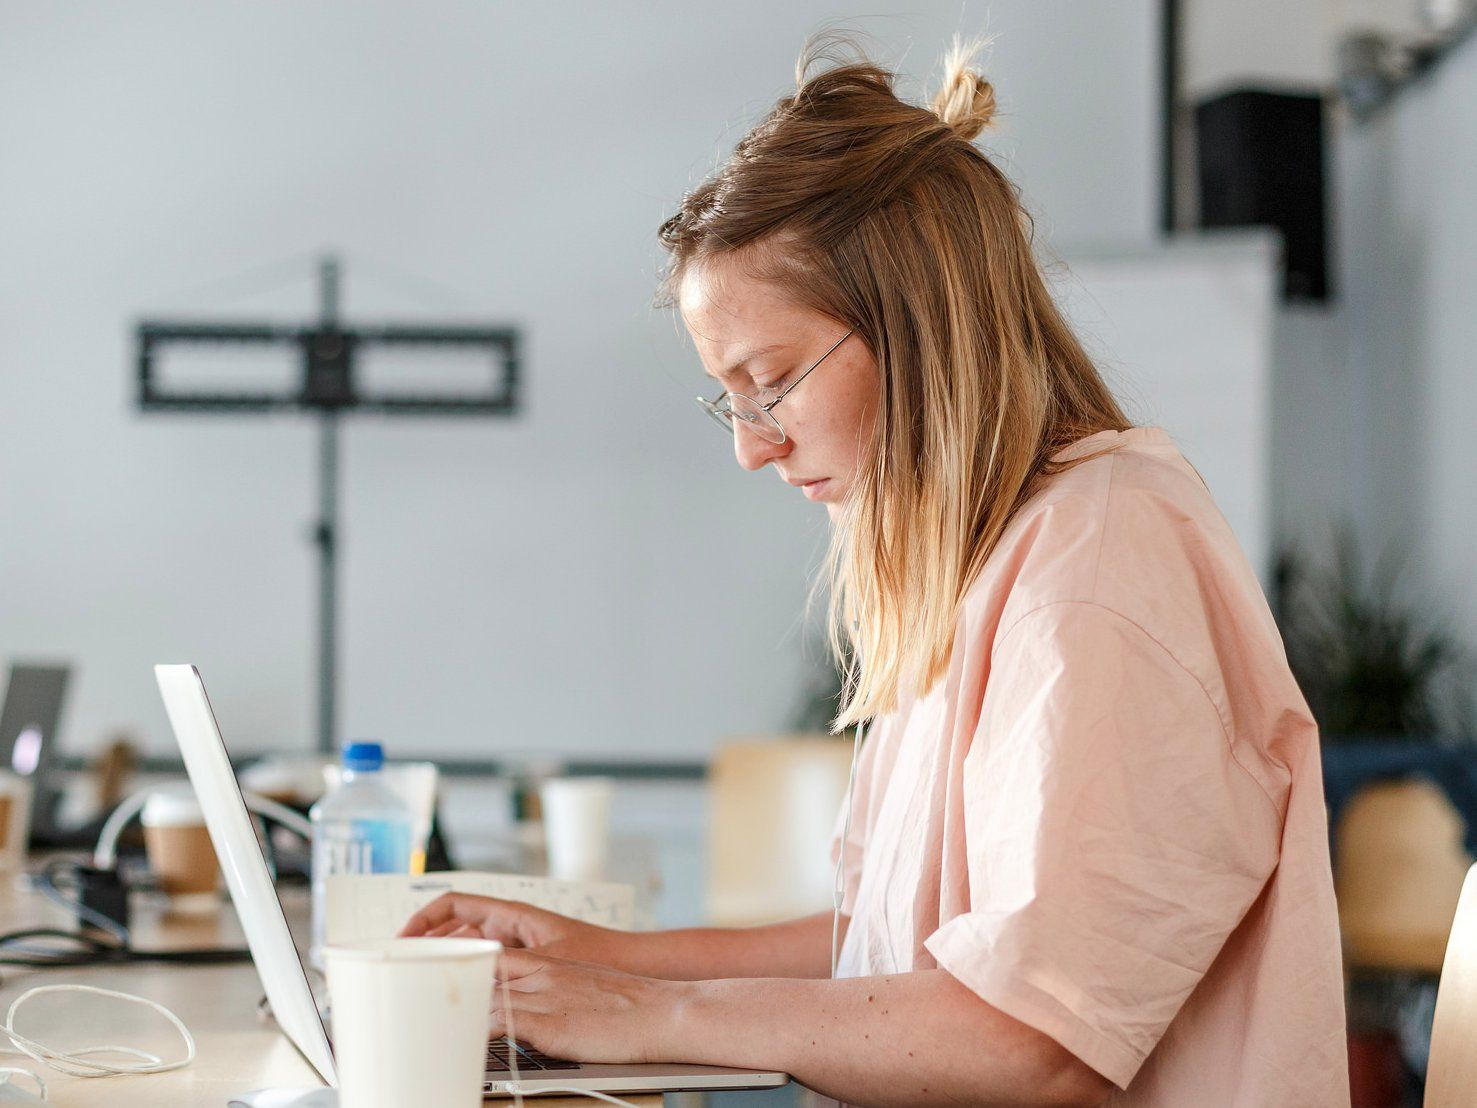 8 highpaying workfromhome jobs that don't require a